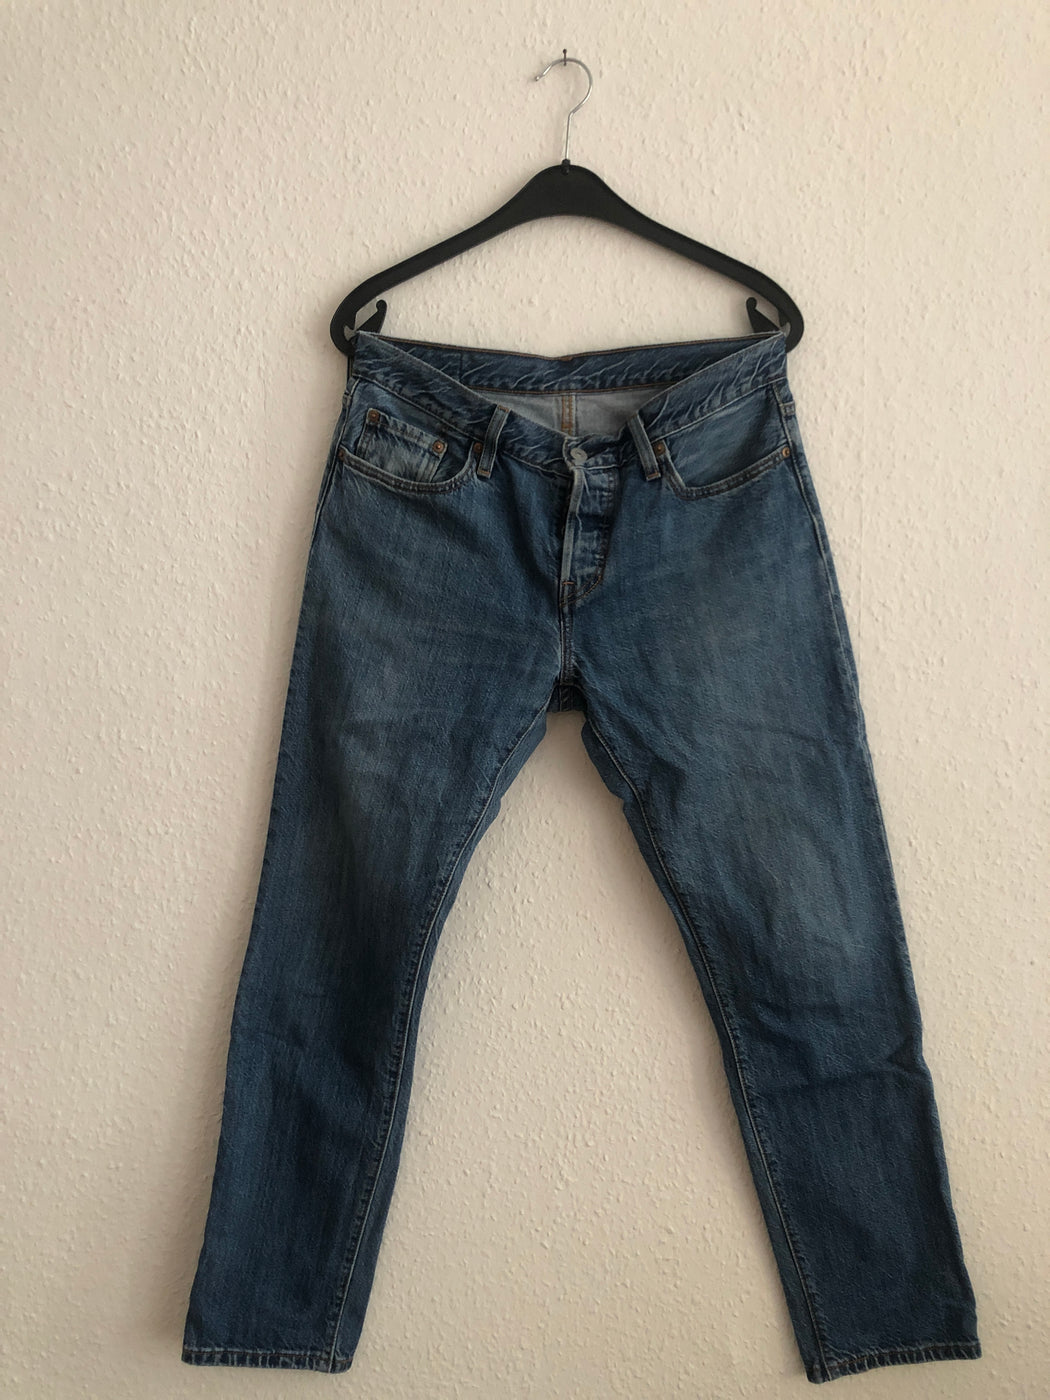 Dark Blue Denim Levi's Jeans  Size 26/27